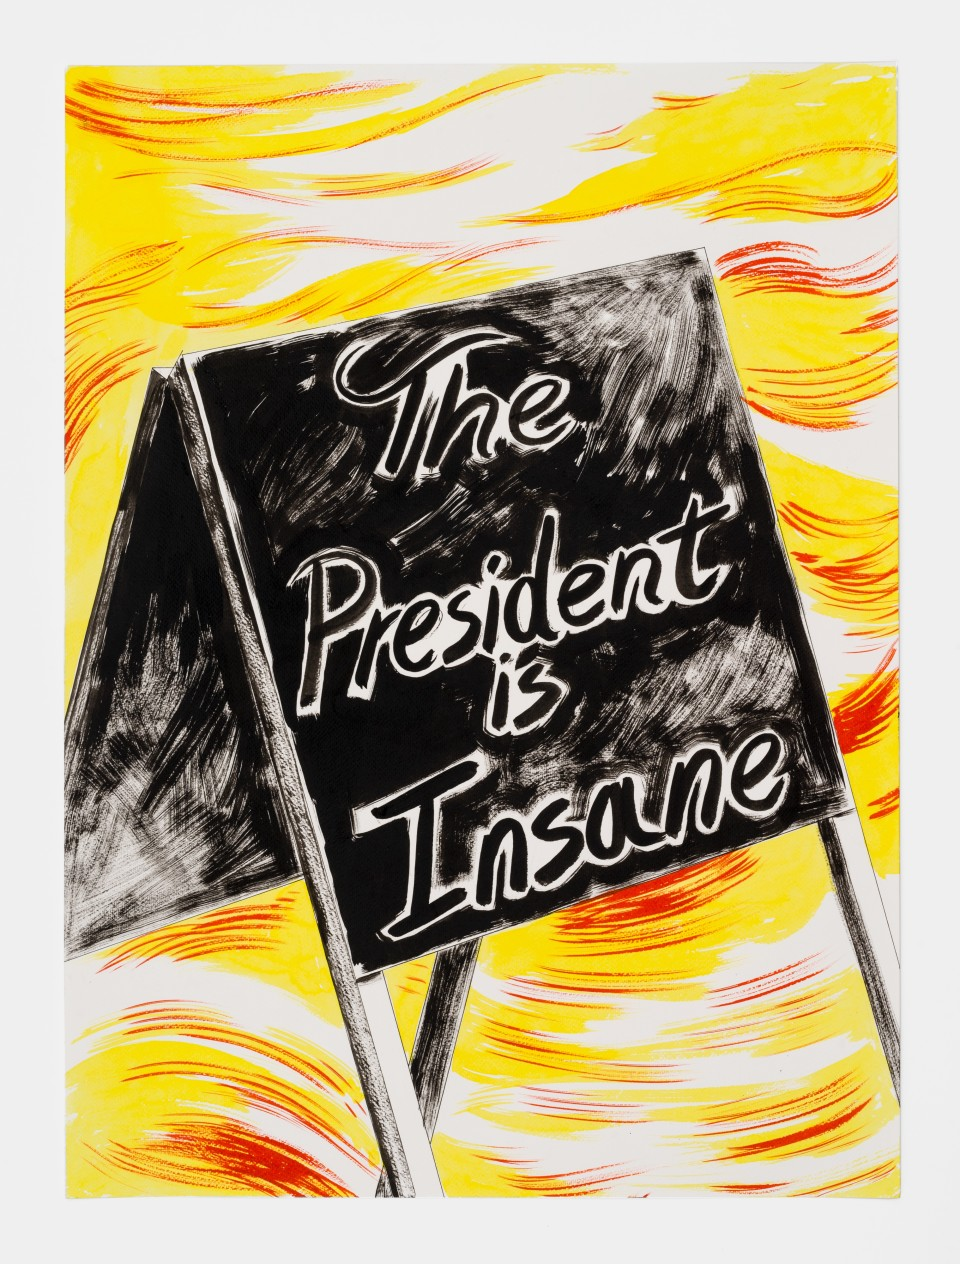 Image: Mark Thomas Gibson  The President is Insane, 2020  ink on paper  30 x 22 inches (76.2 x 55.9 cm)